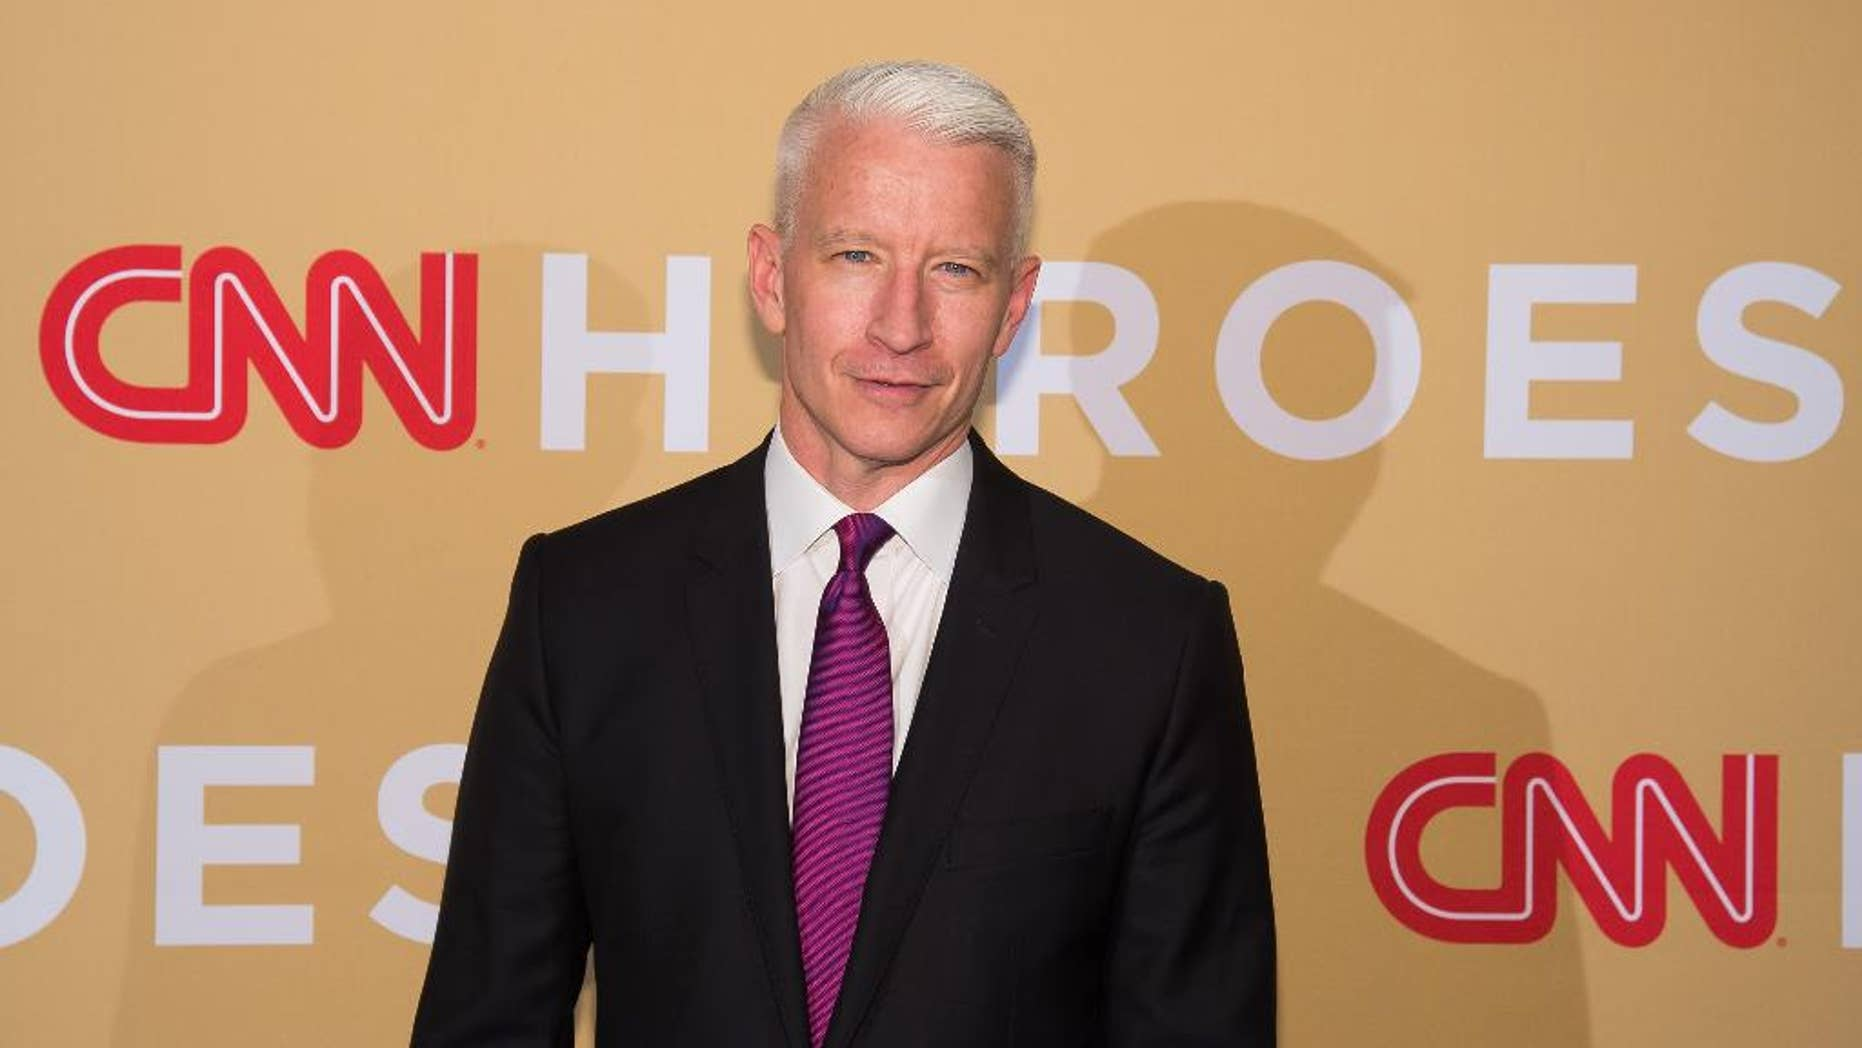 CNN cut Anderson Cooper's program in half amid dismal ratings to make room for Chris Cuomo's new prime-time gig.